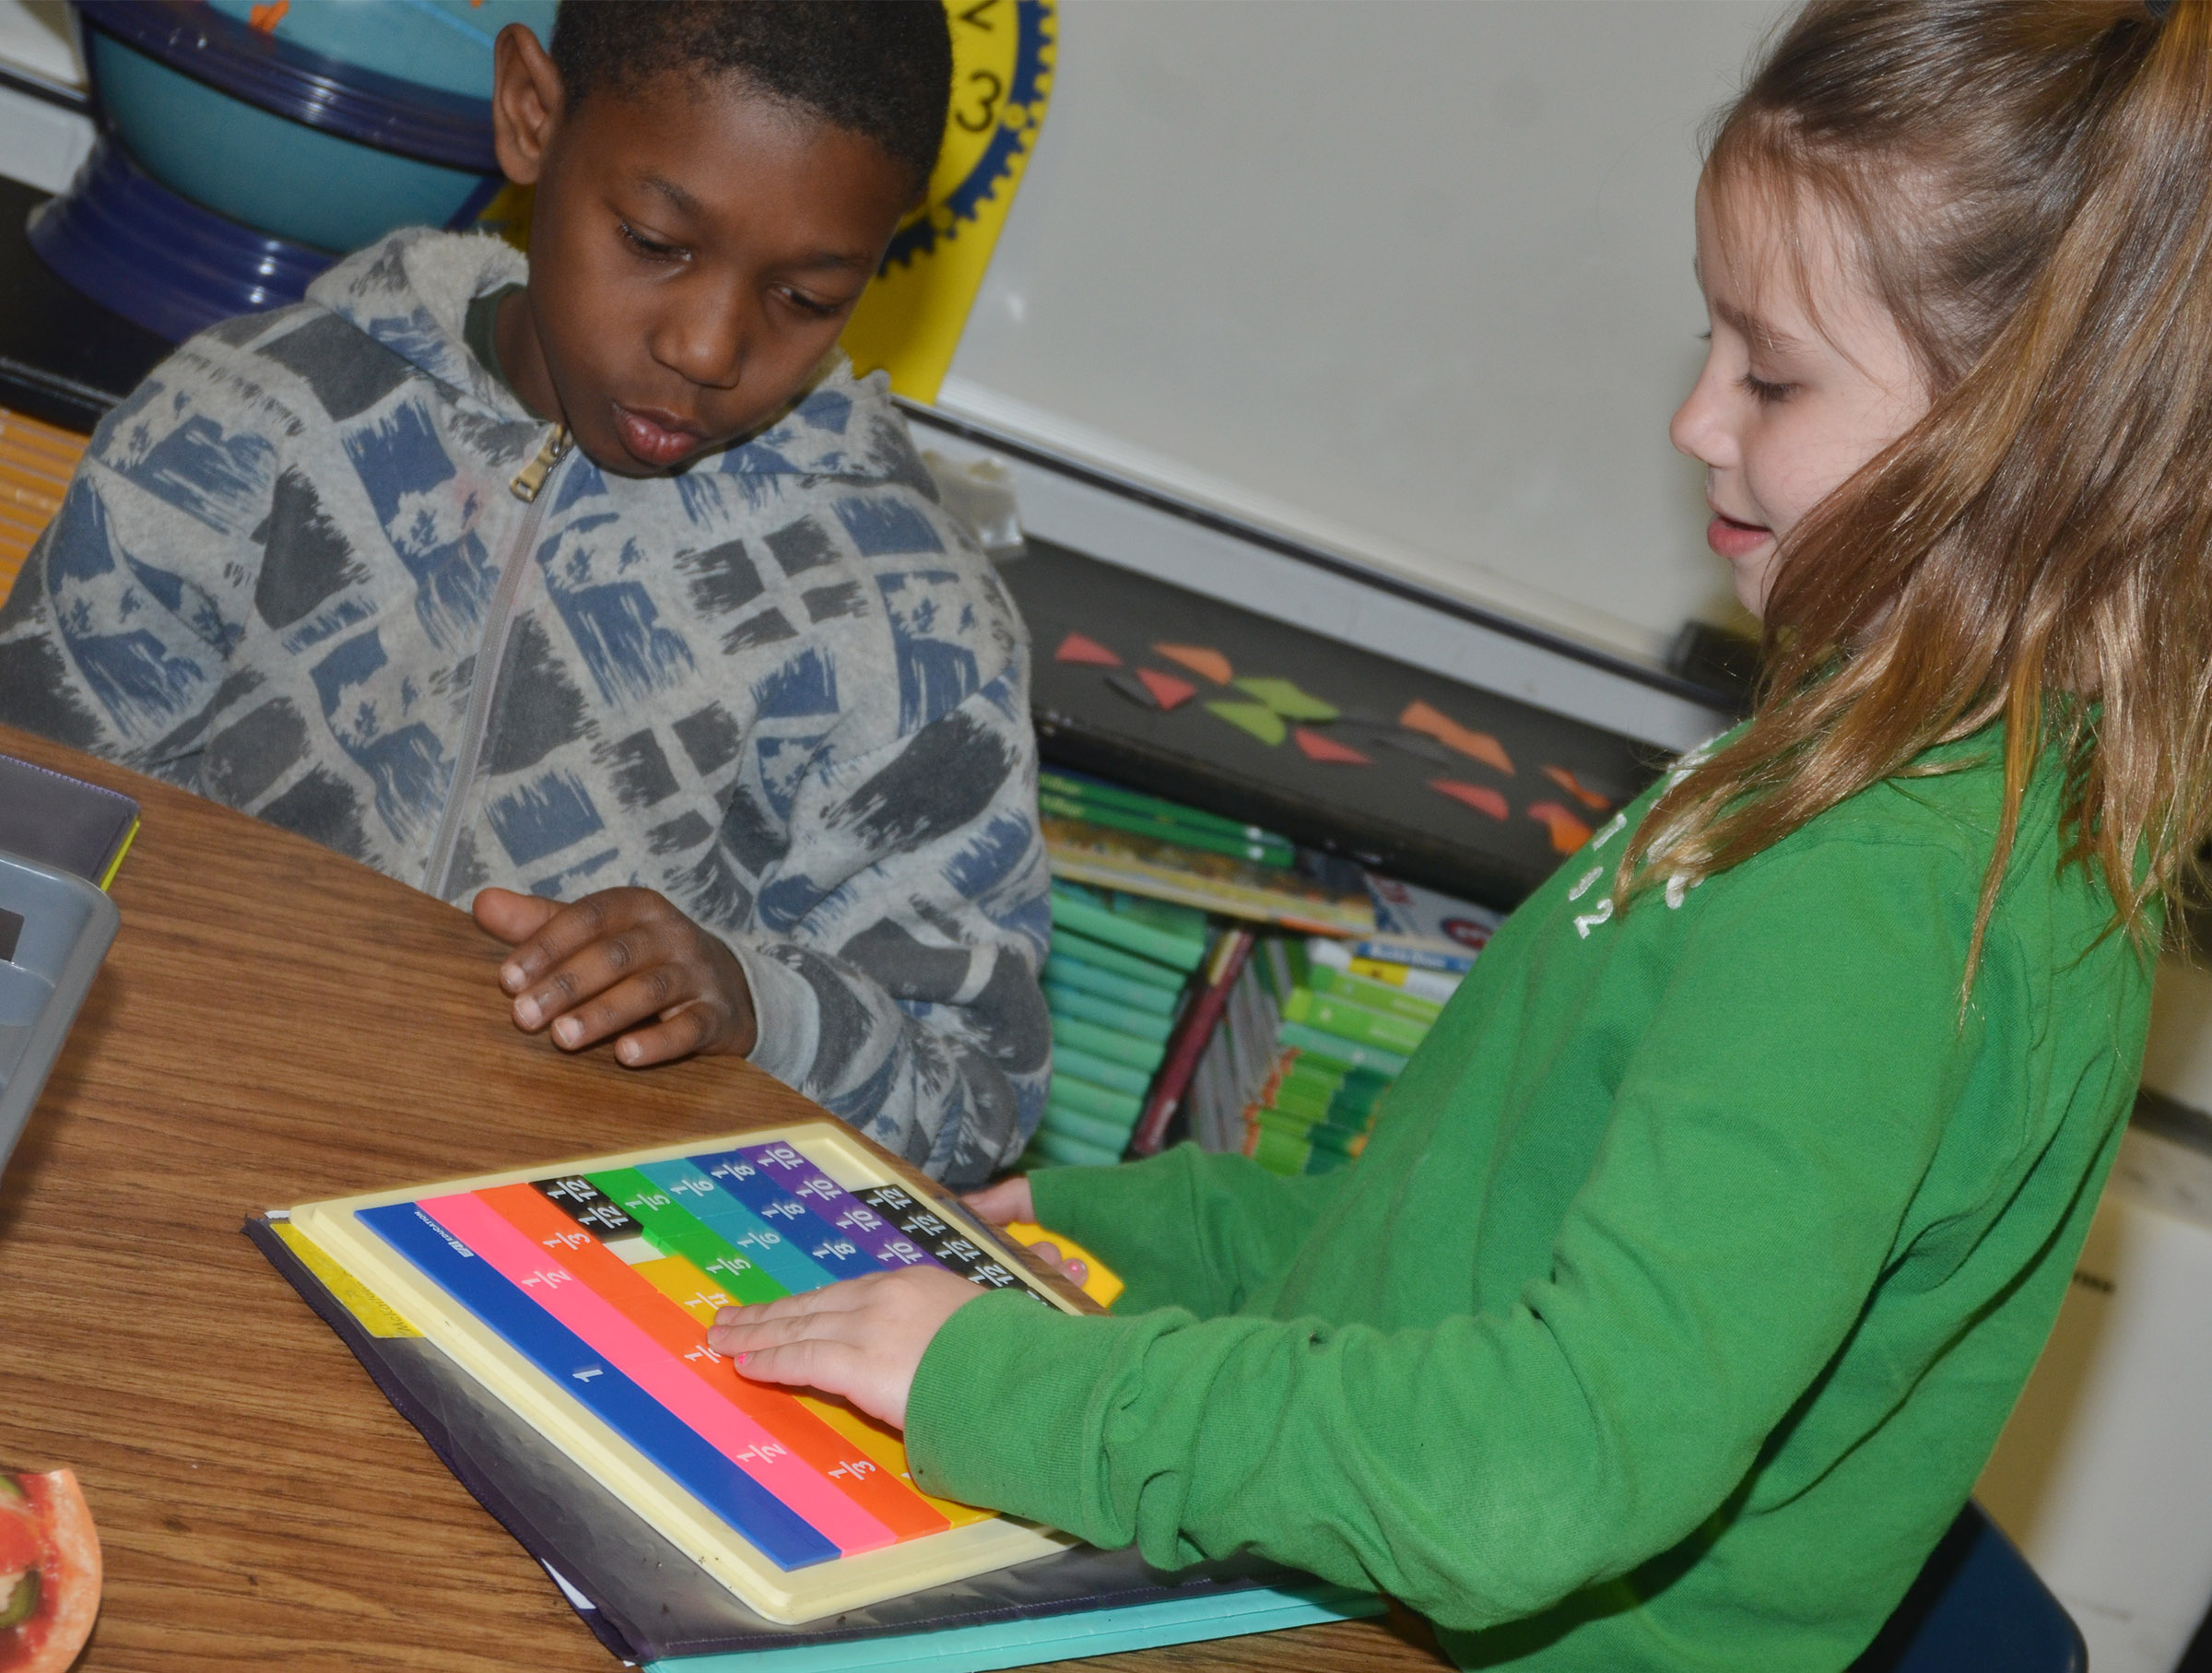 CES third-graders Jaron Johnson, at left, and McKailynn Grubaugh use a math game to study fractions.